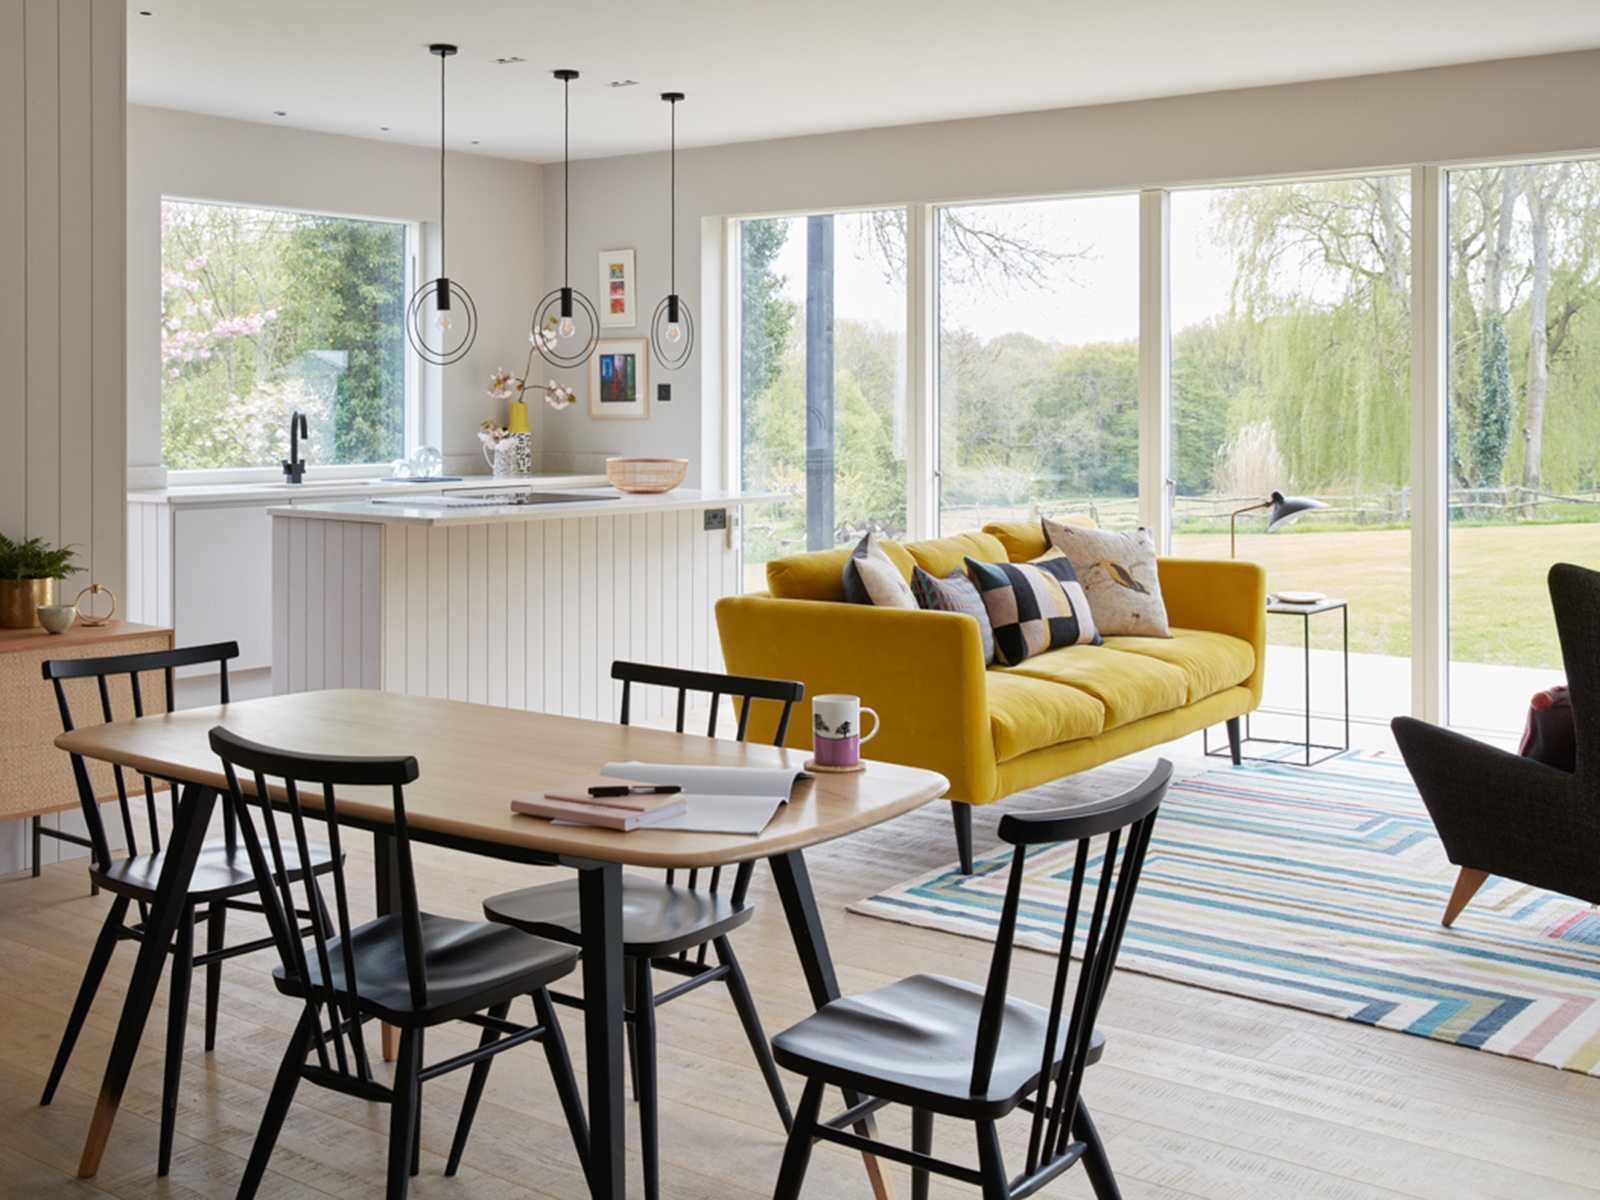 Interior designer Sophie Robinson and kate Watson-Smyth give interiors advice on The Great Indoors Podcast Sophie's mums' open plan annex